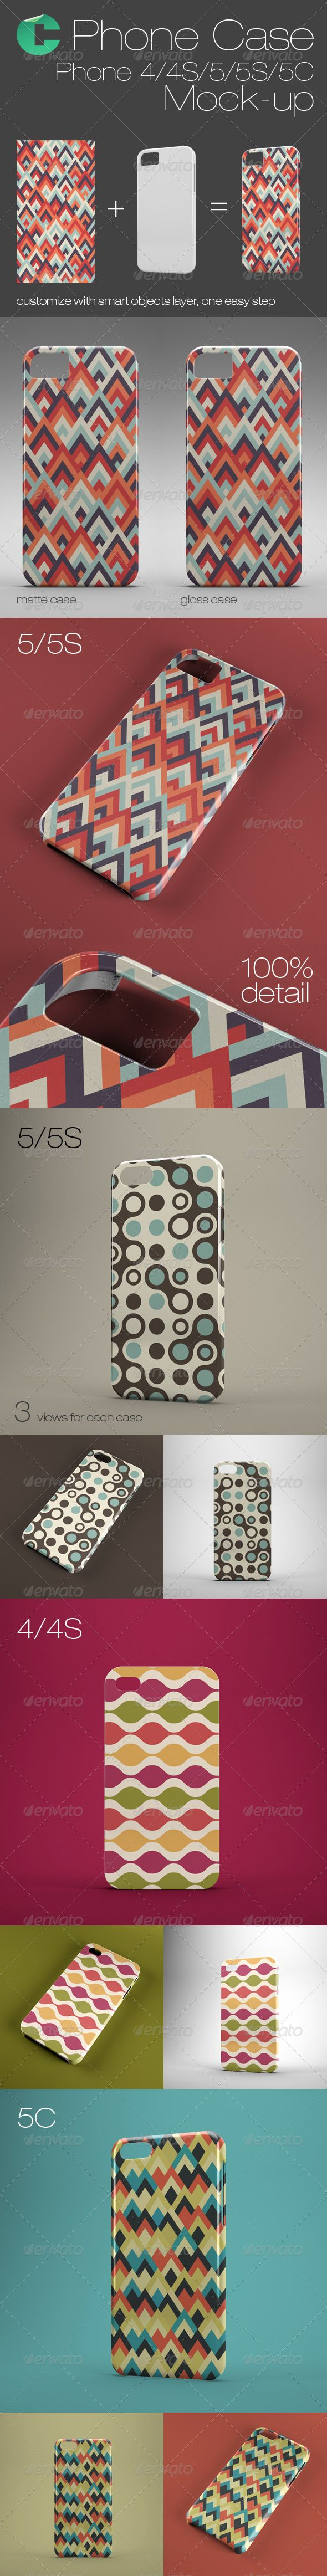 Phone Case Mock-Up - Phone 4/4S/5/5S/5C - Mobile Displays